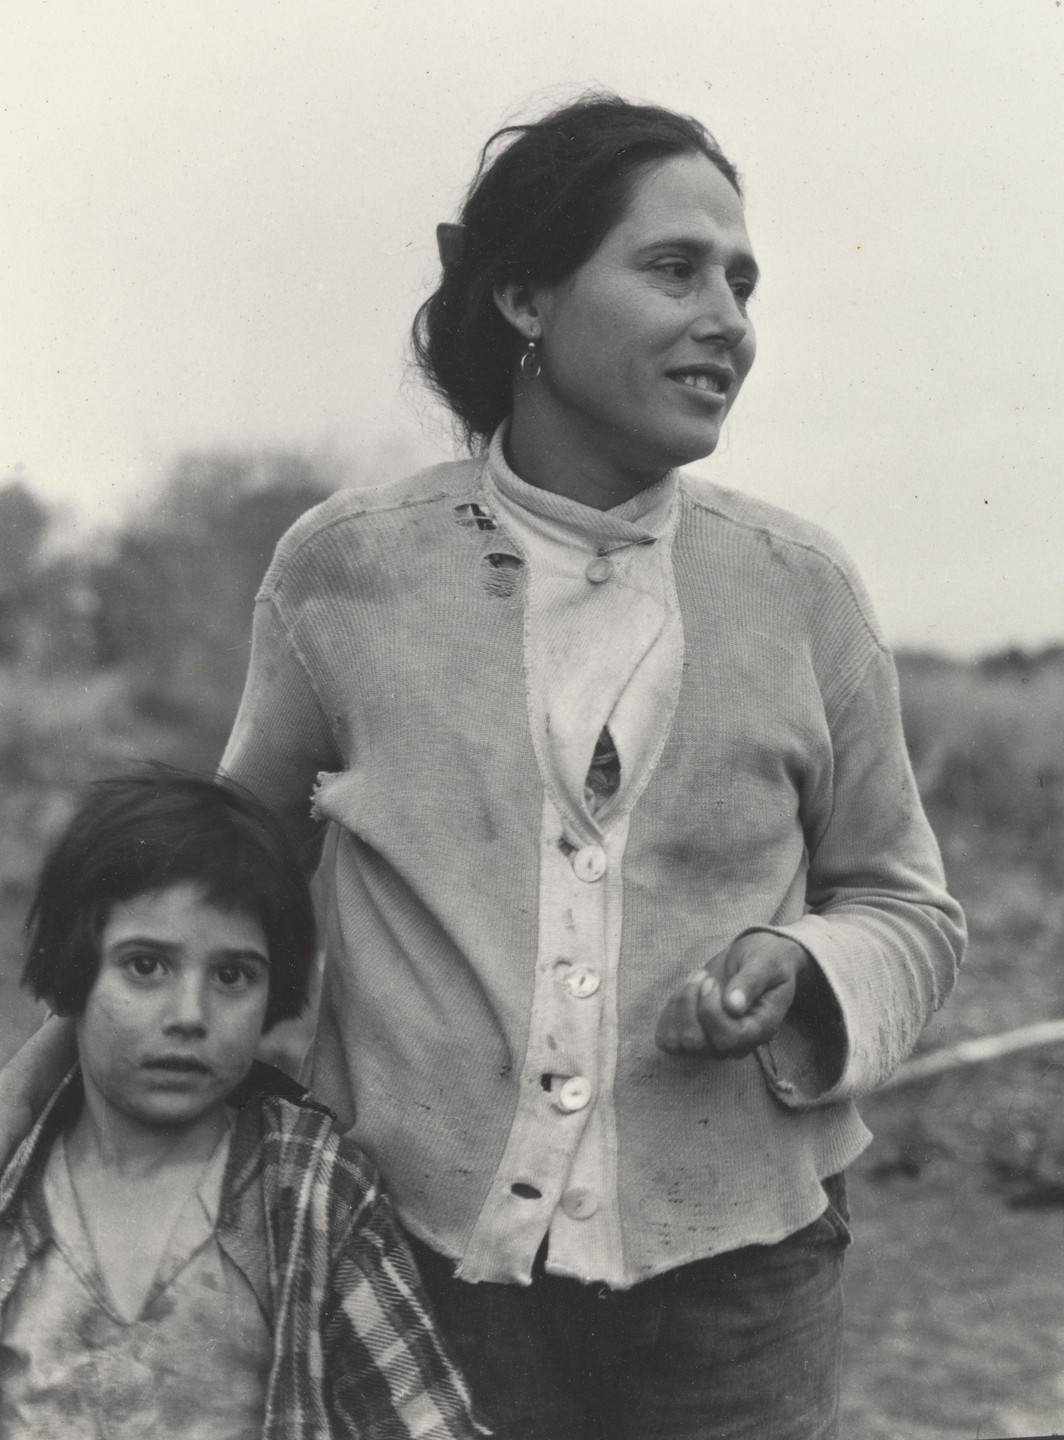 Dorothea Lange. Mexican Woman and Child, Imperial Valley, California. March 1935